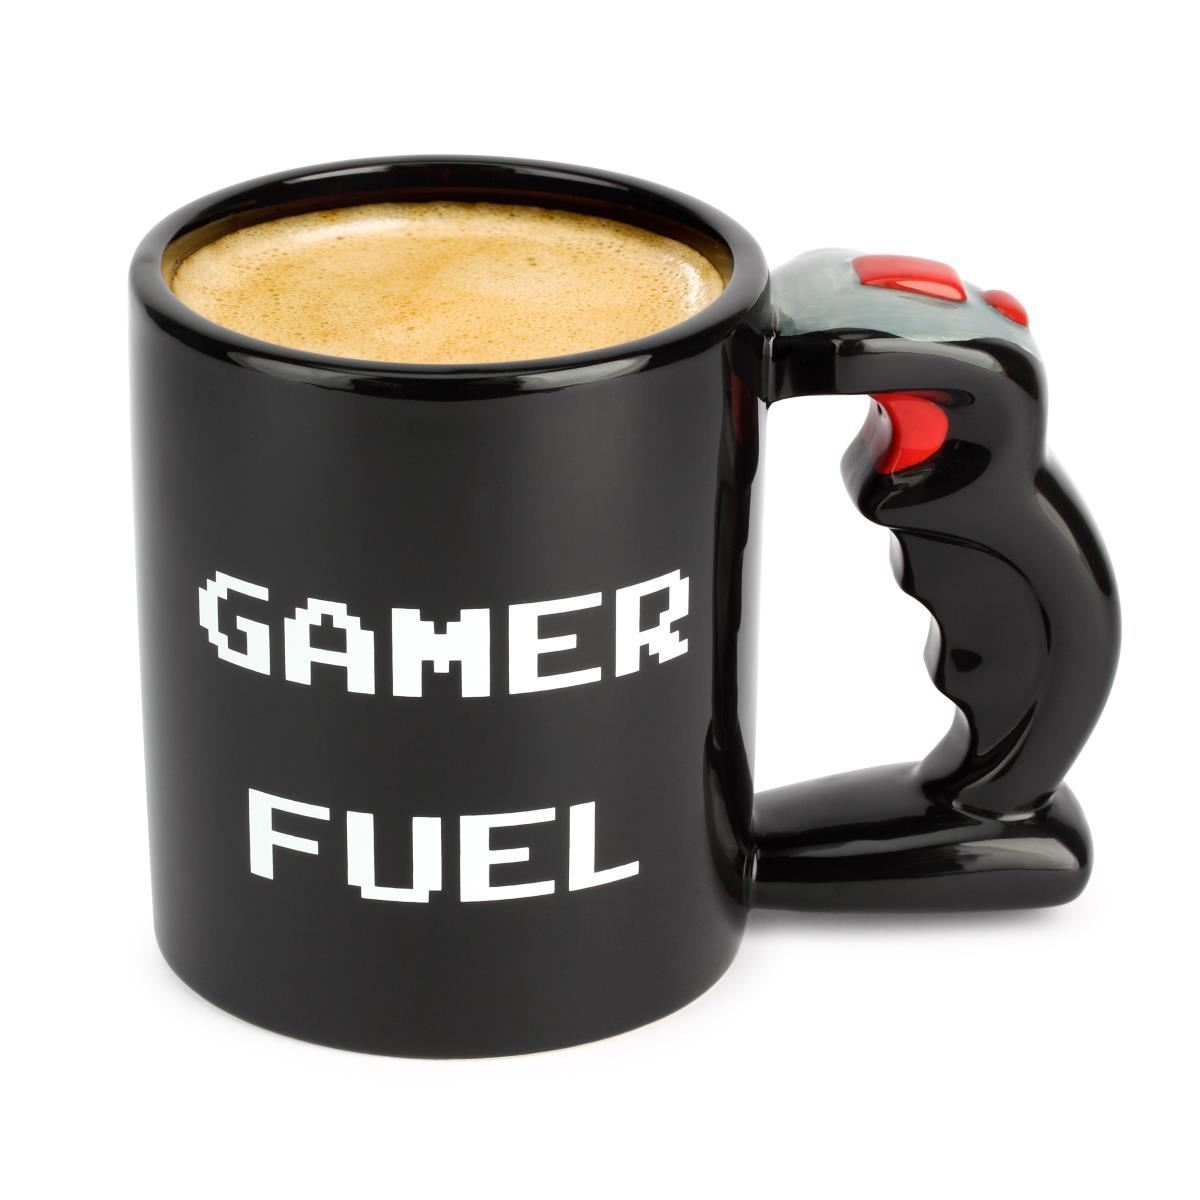 Gamer Fuel Mug Large 650ml Ceramic Tea Coffee Cup Black